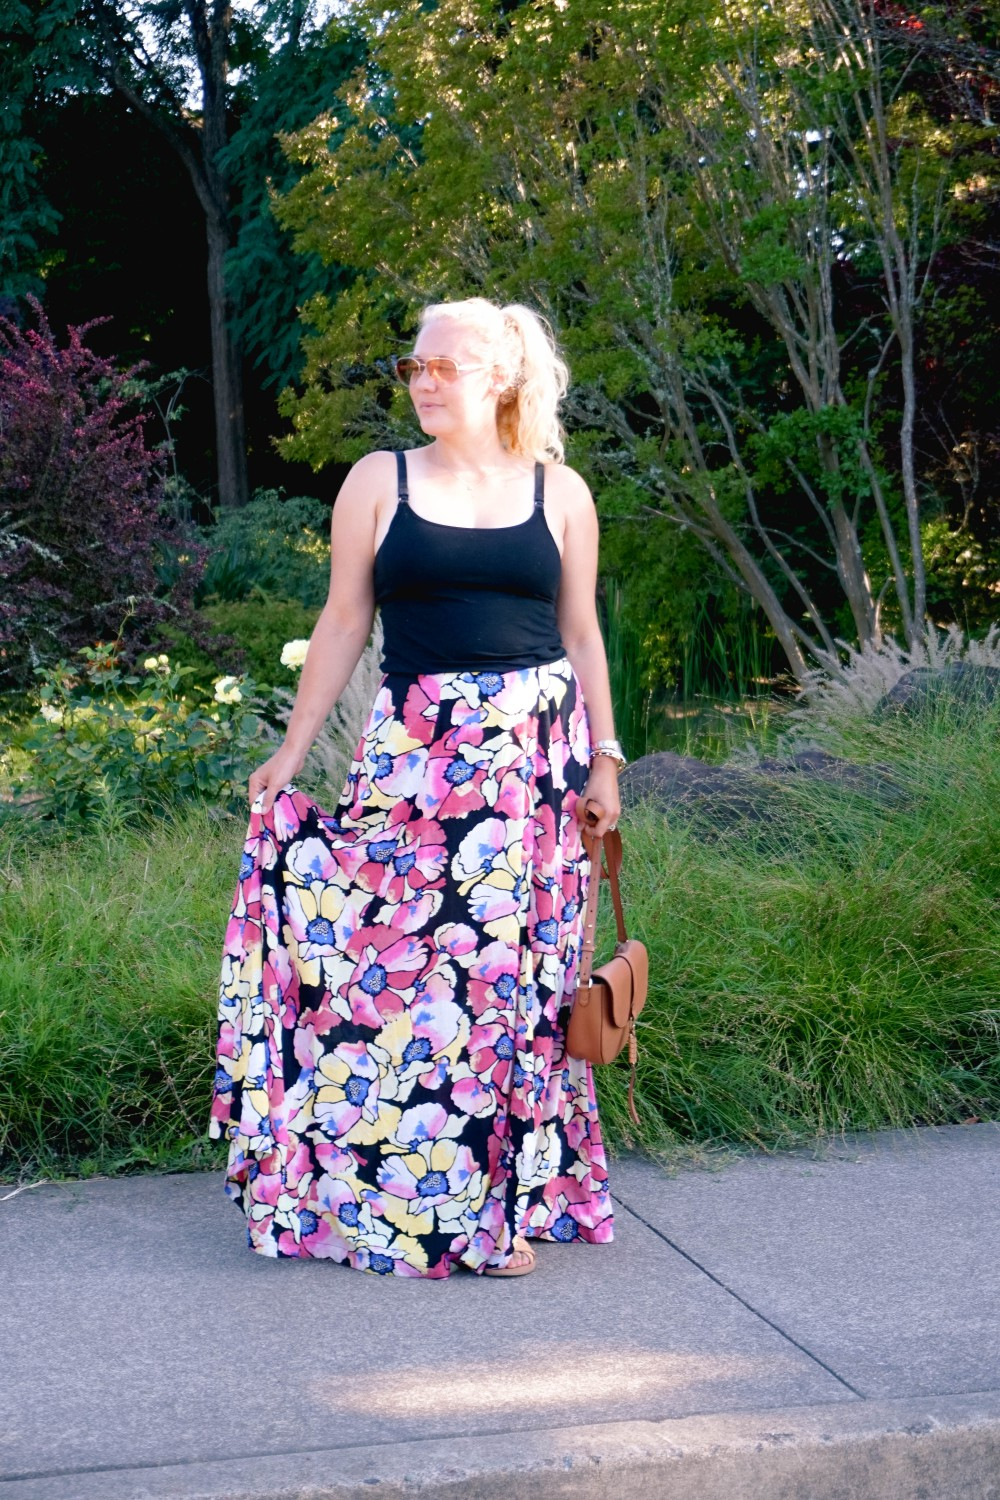 Hot Tropics Floral Maxi Skirt-Free People Floral Maxi Skirt-Outfit Inspiration-Wine Country-Mom Style-Nursing Top-Have Need Want 5